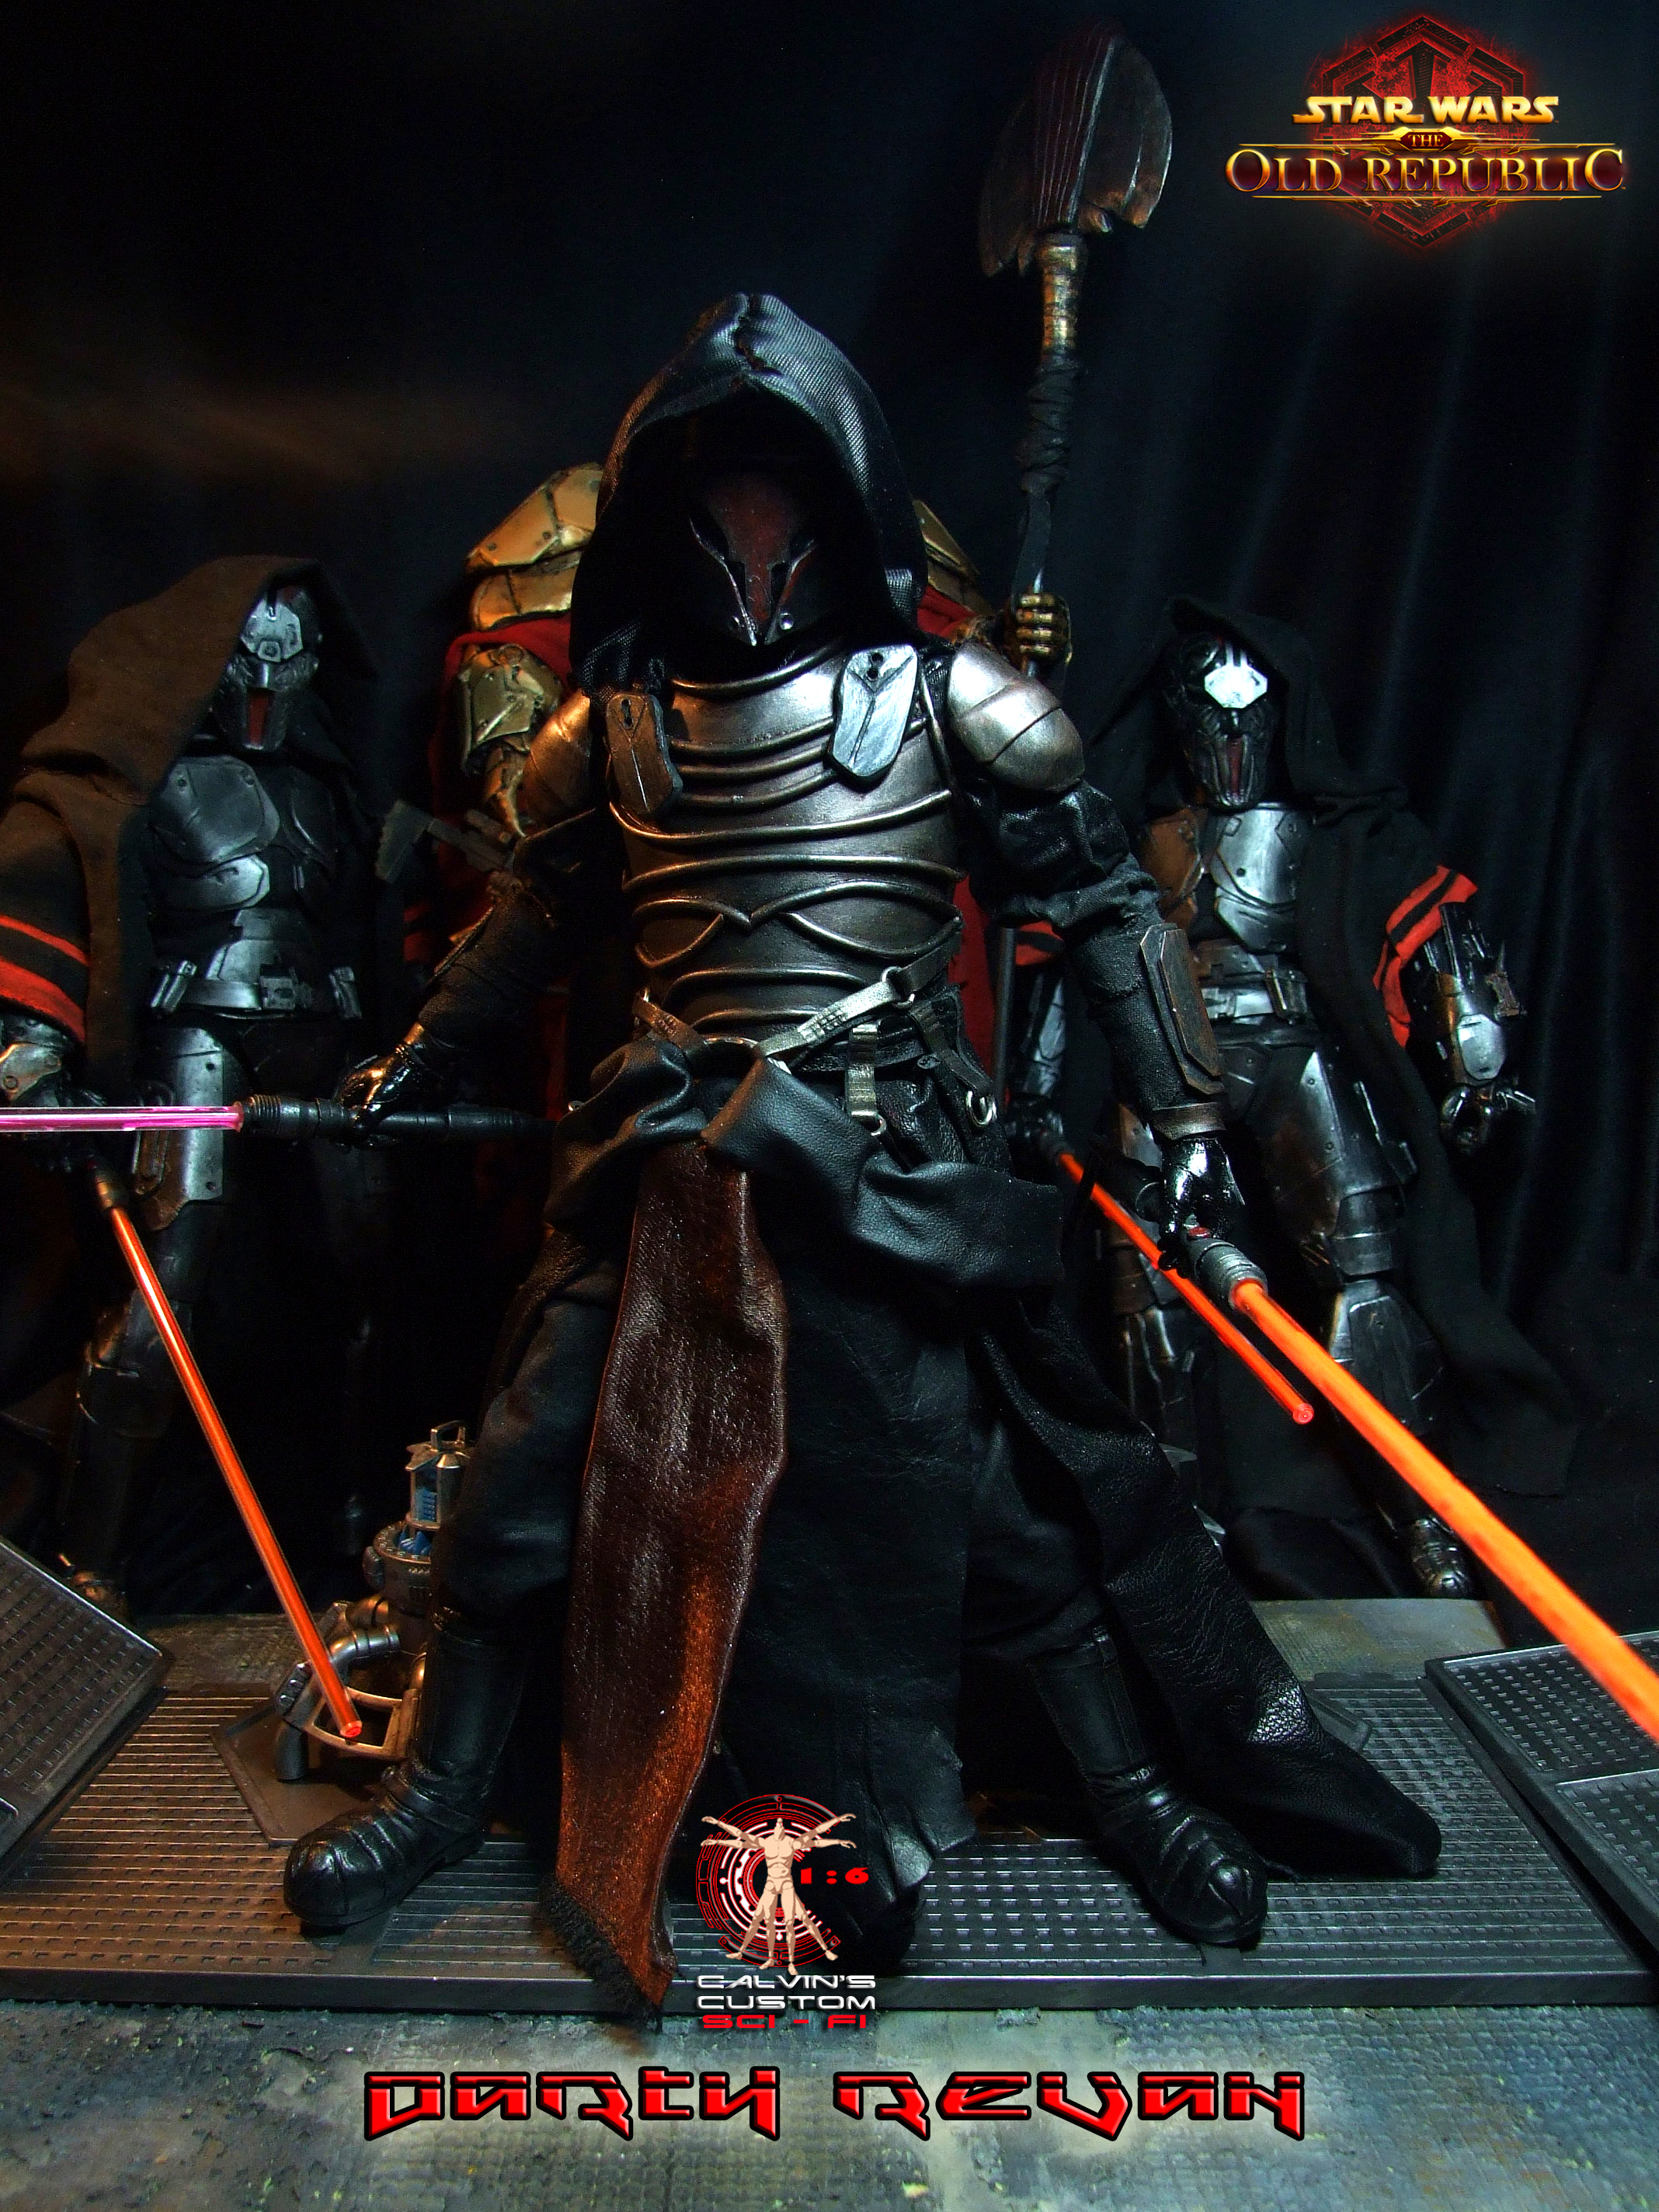 Calvin S Custom One Sixth Scale Swtor Darth Revan Figure Etoile Etoile Star Wars Photo 36977658 Fanpop Page 7